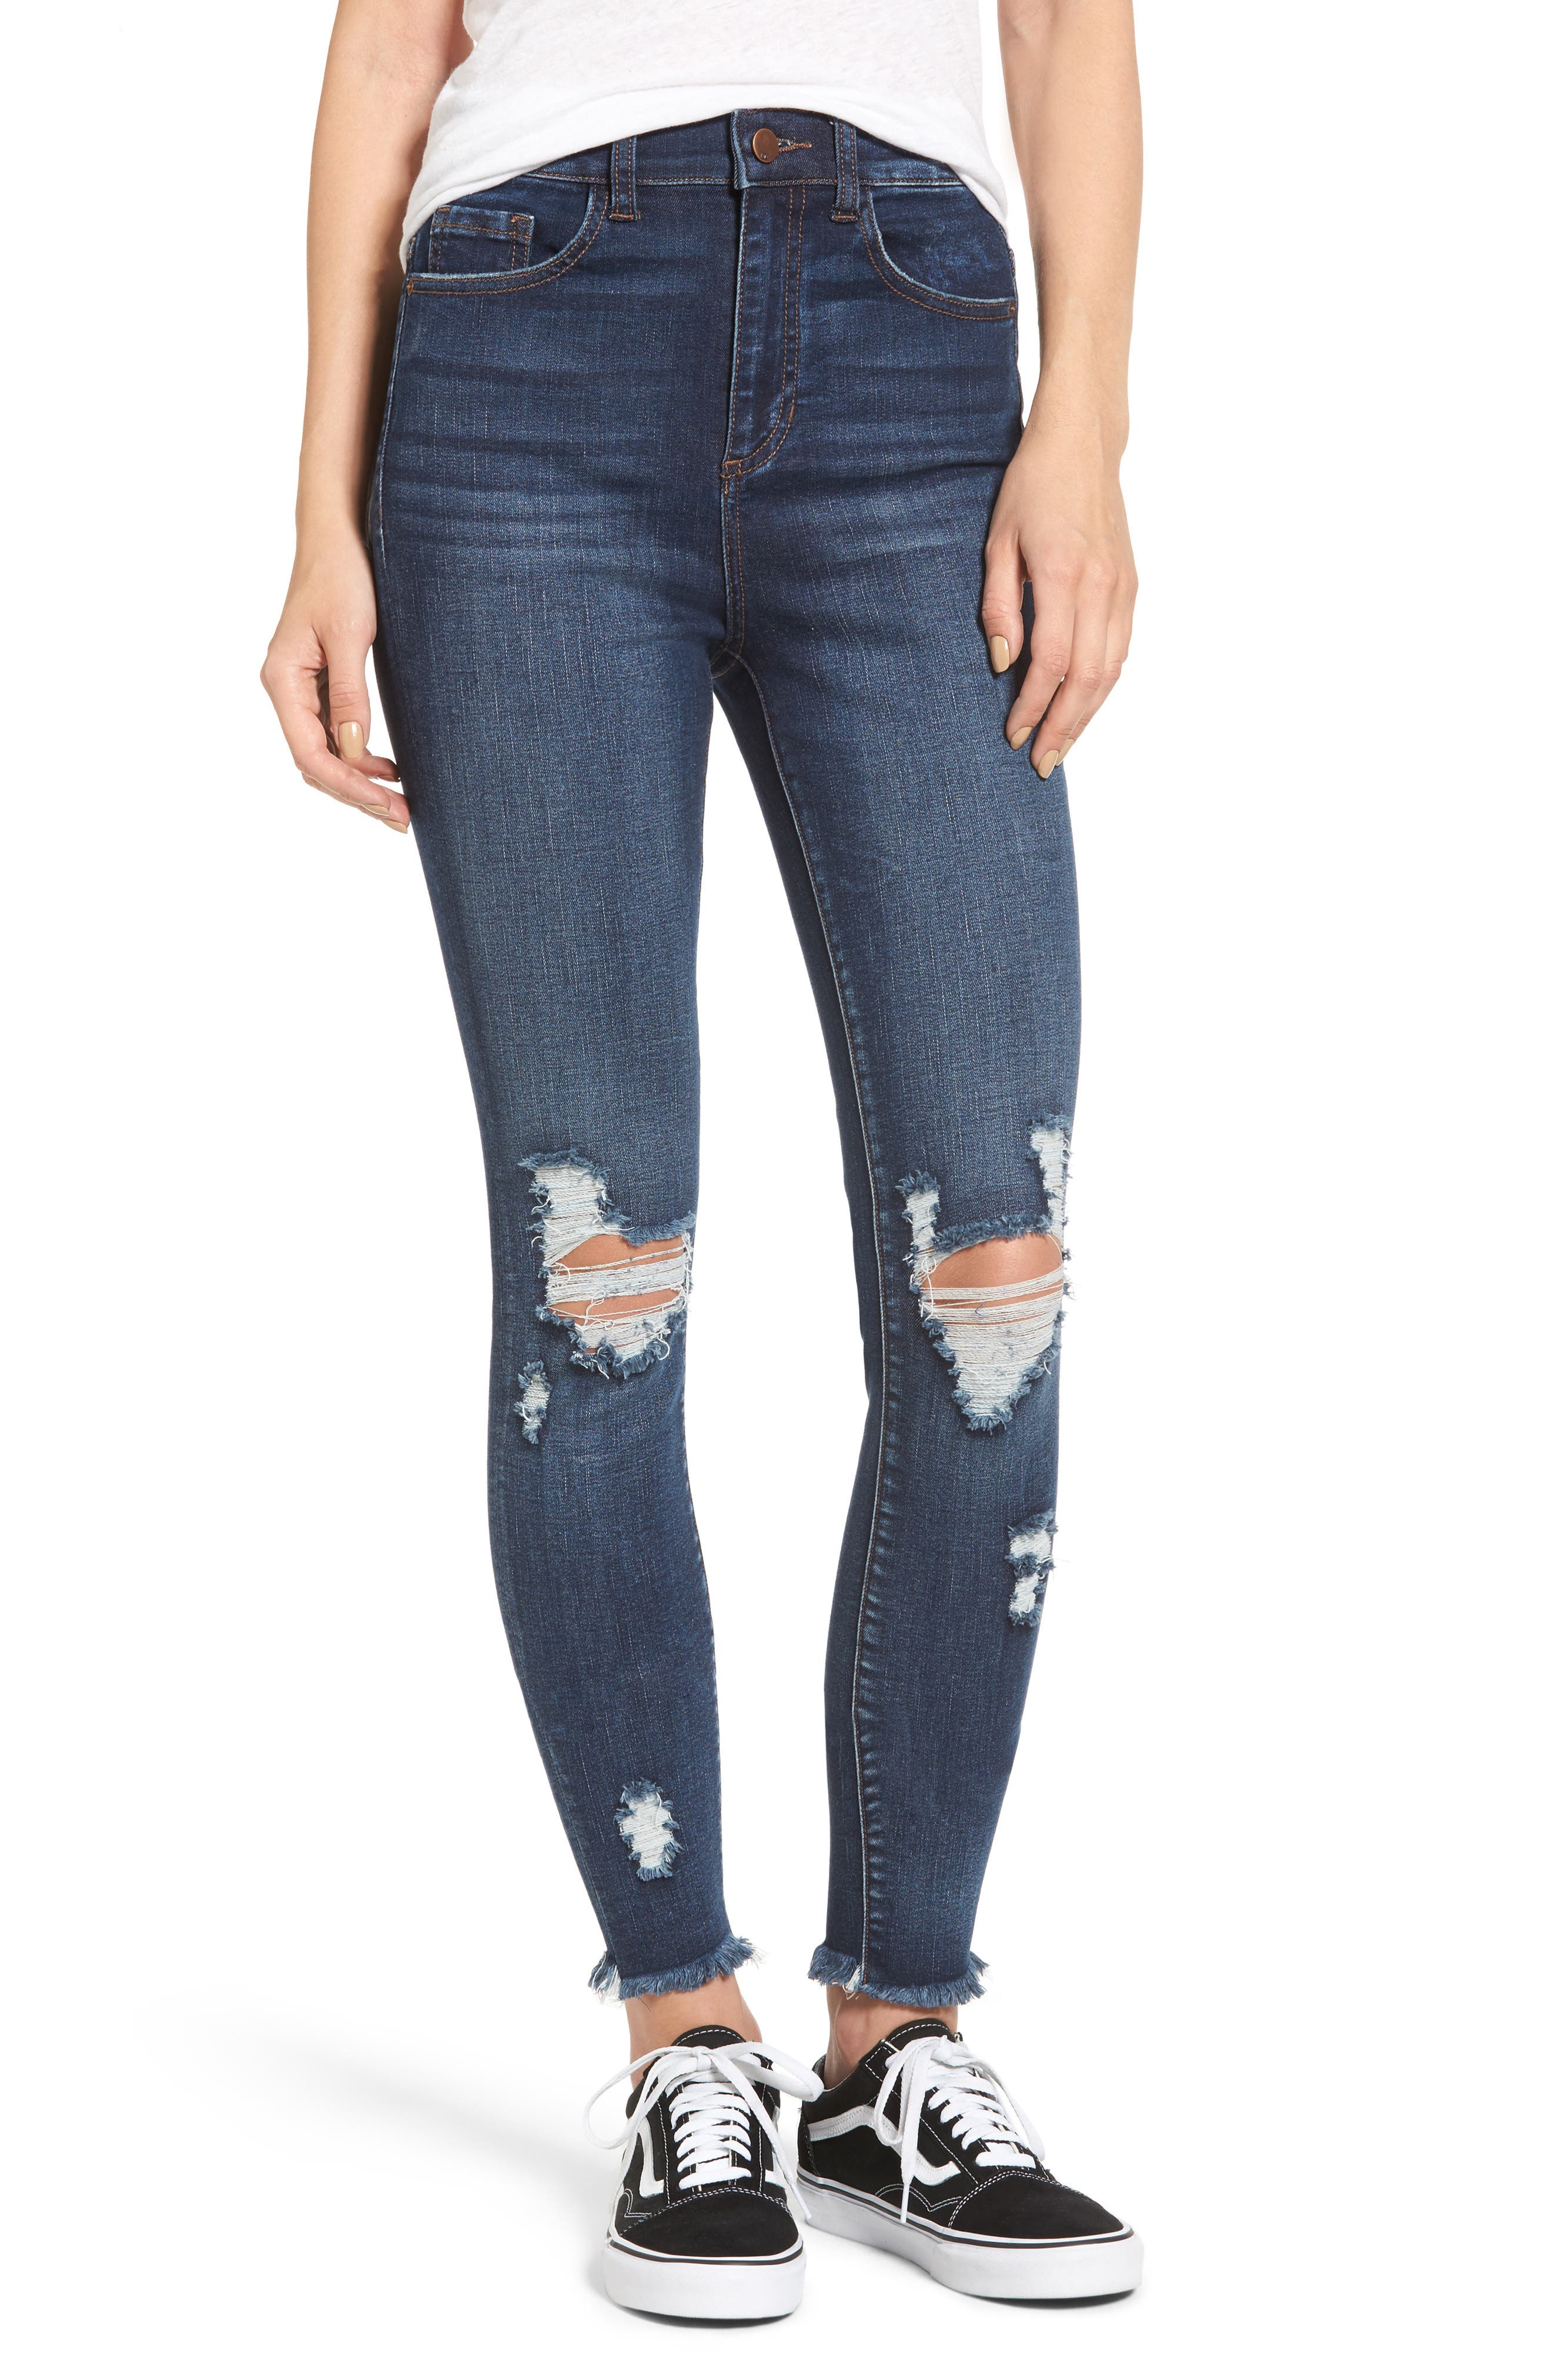 SP Black Distressed High Waist Skinny Jeans